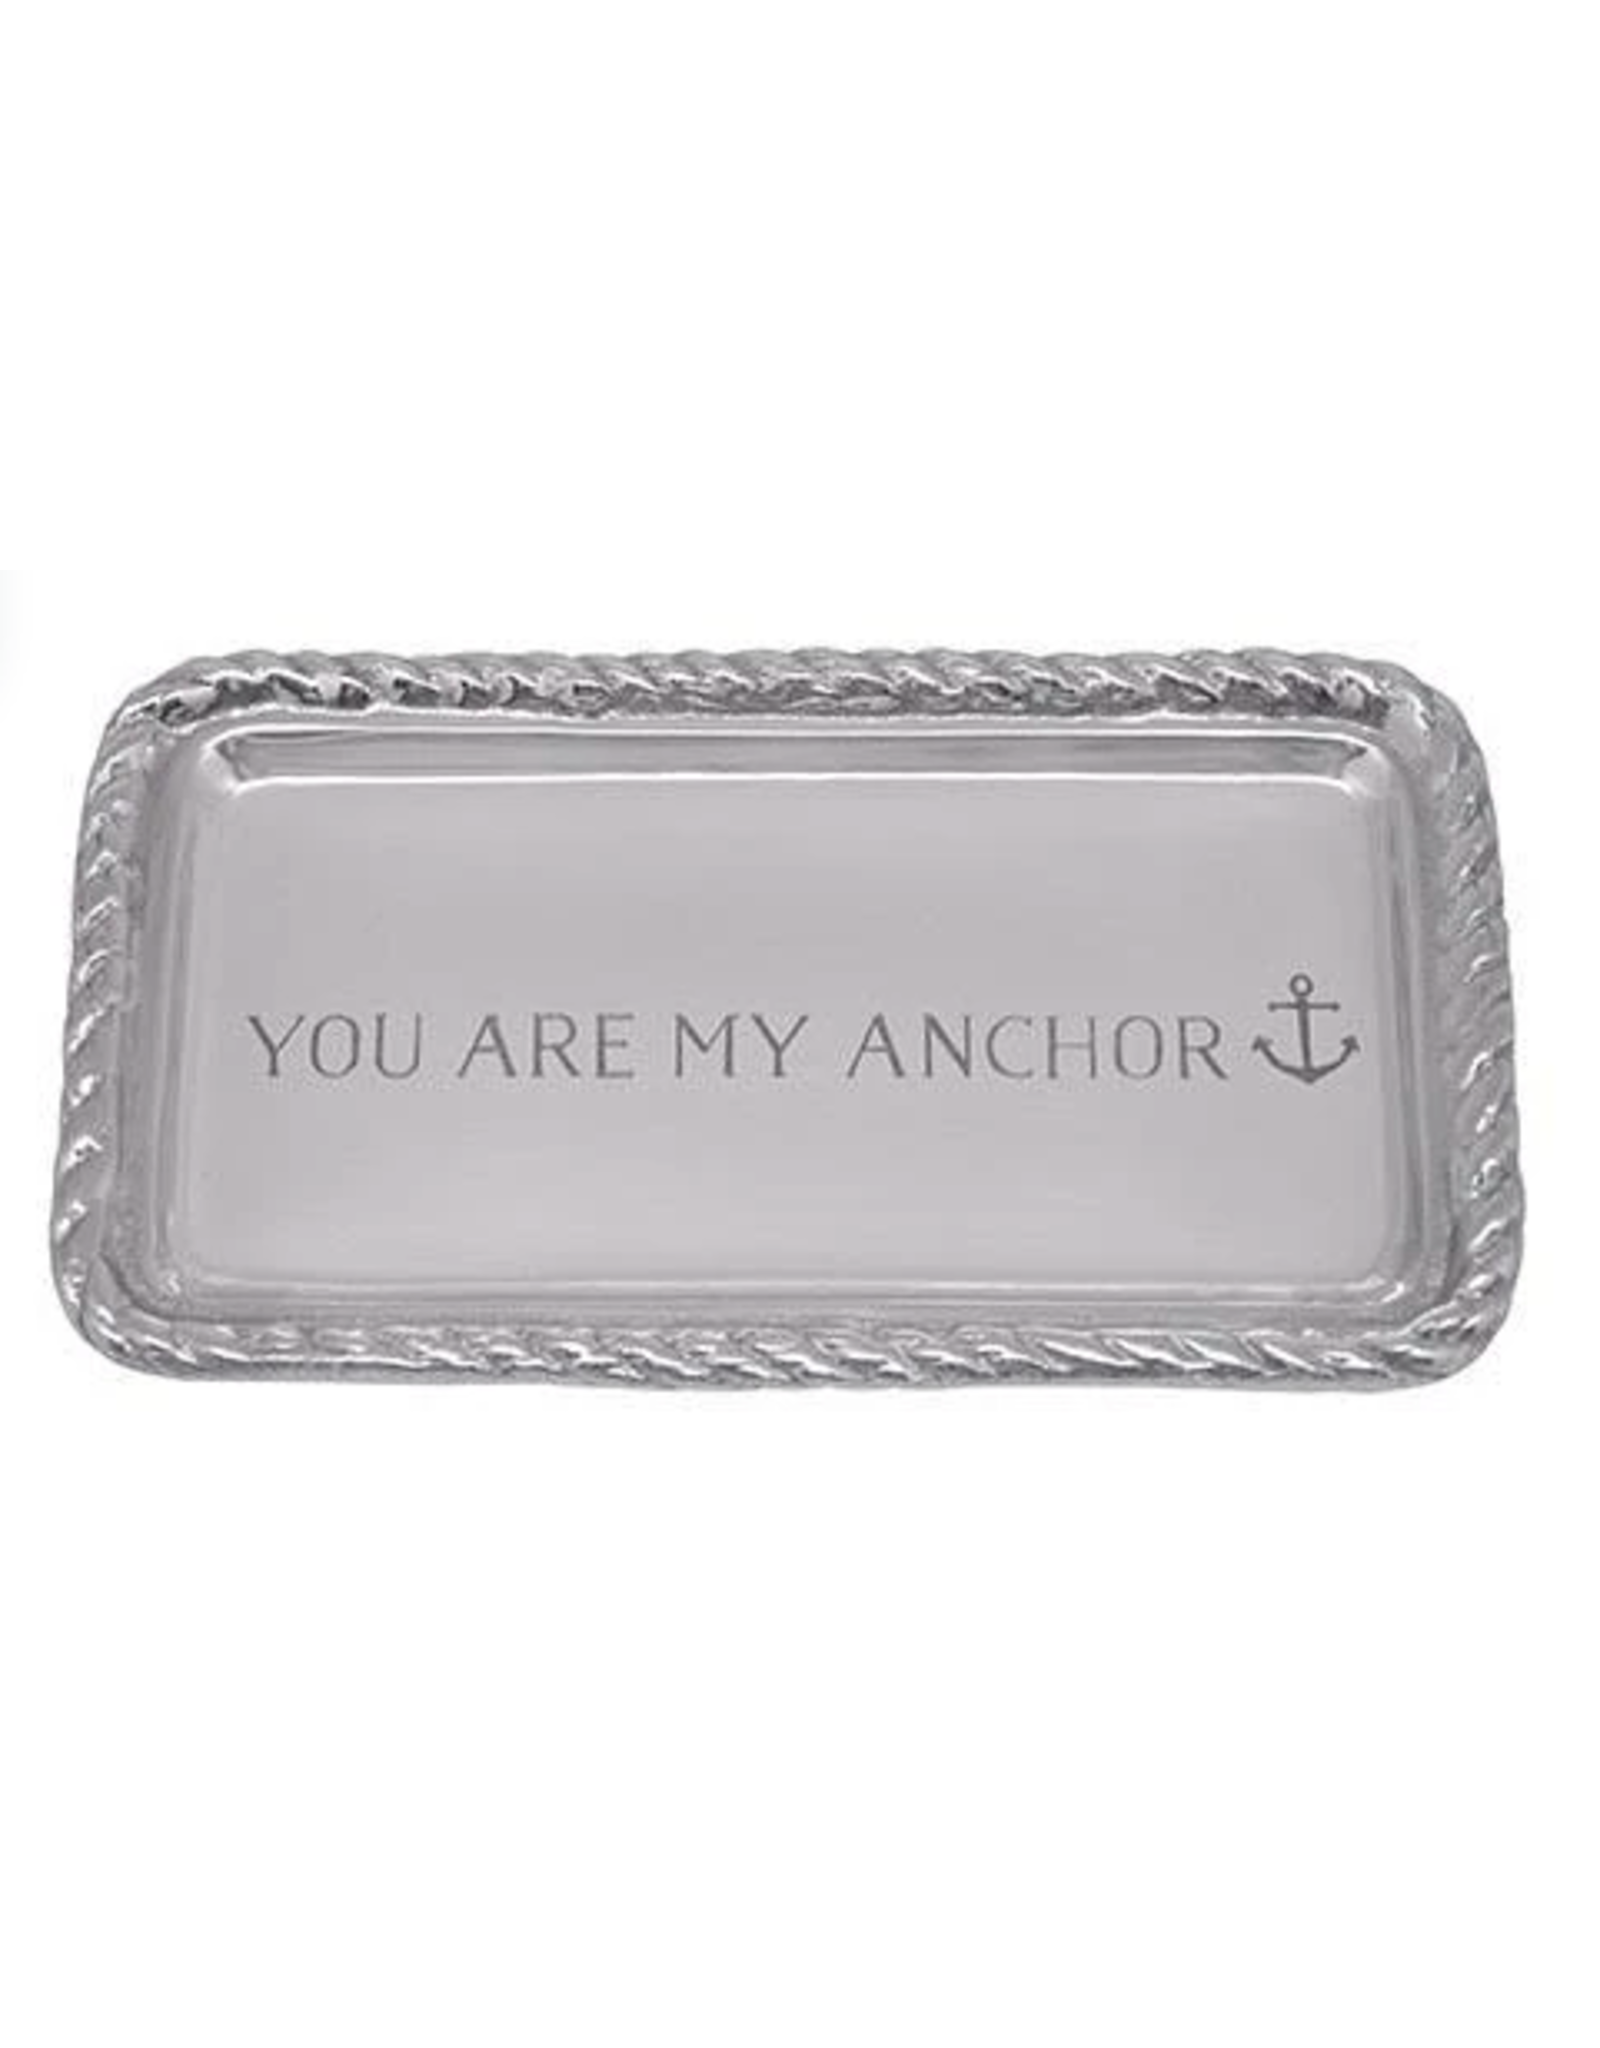 Mariposa You Are My Anchor Rope Tray